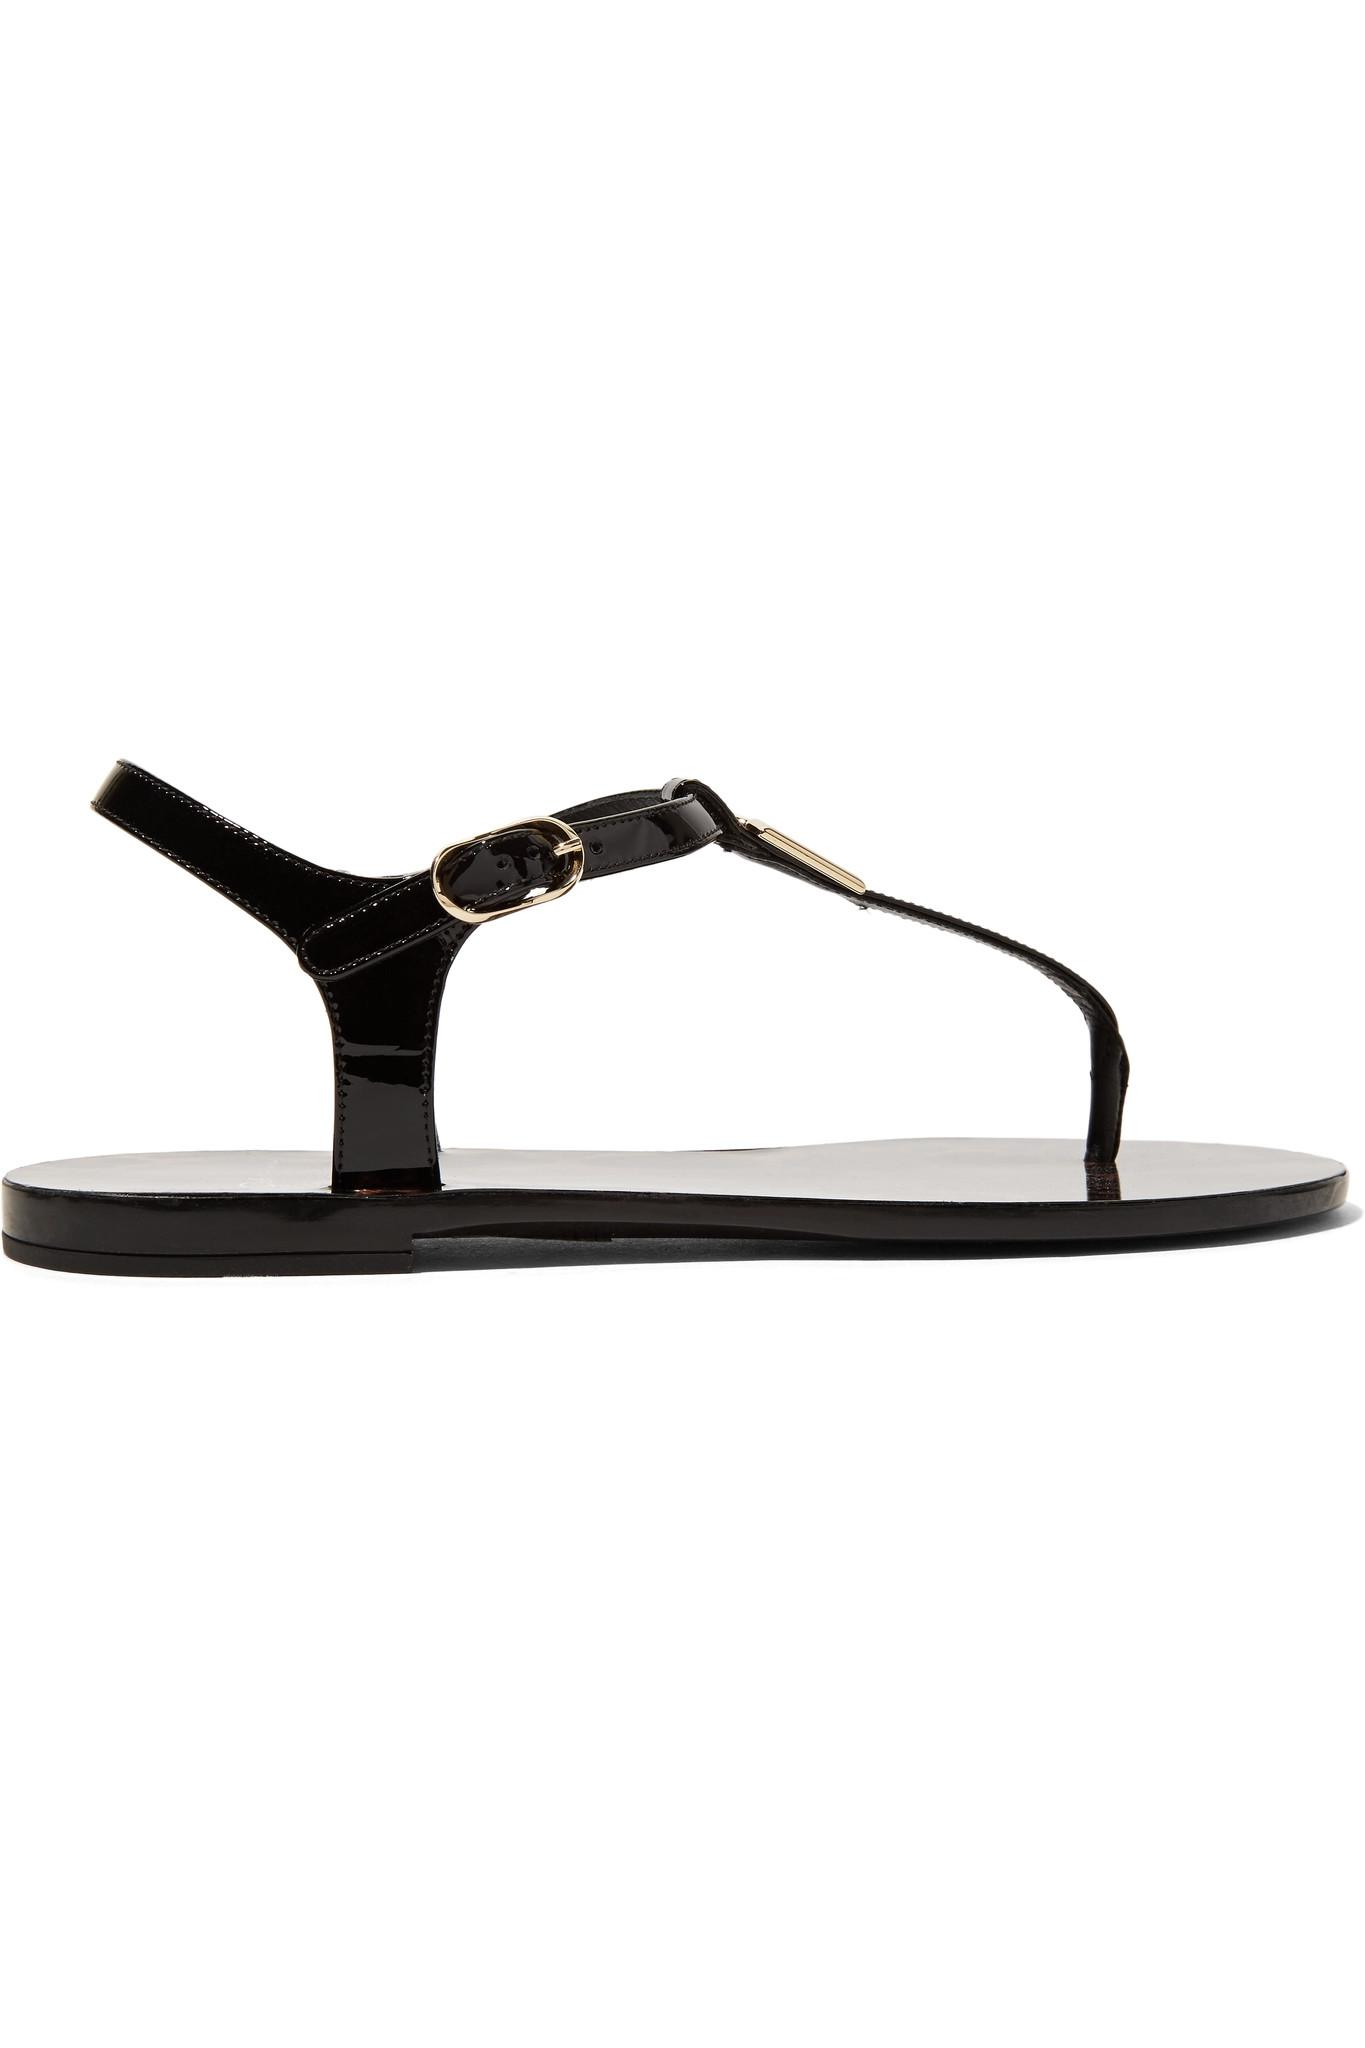 Dolce gabbana embellished patent leather sandals in for Net a porter logo